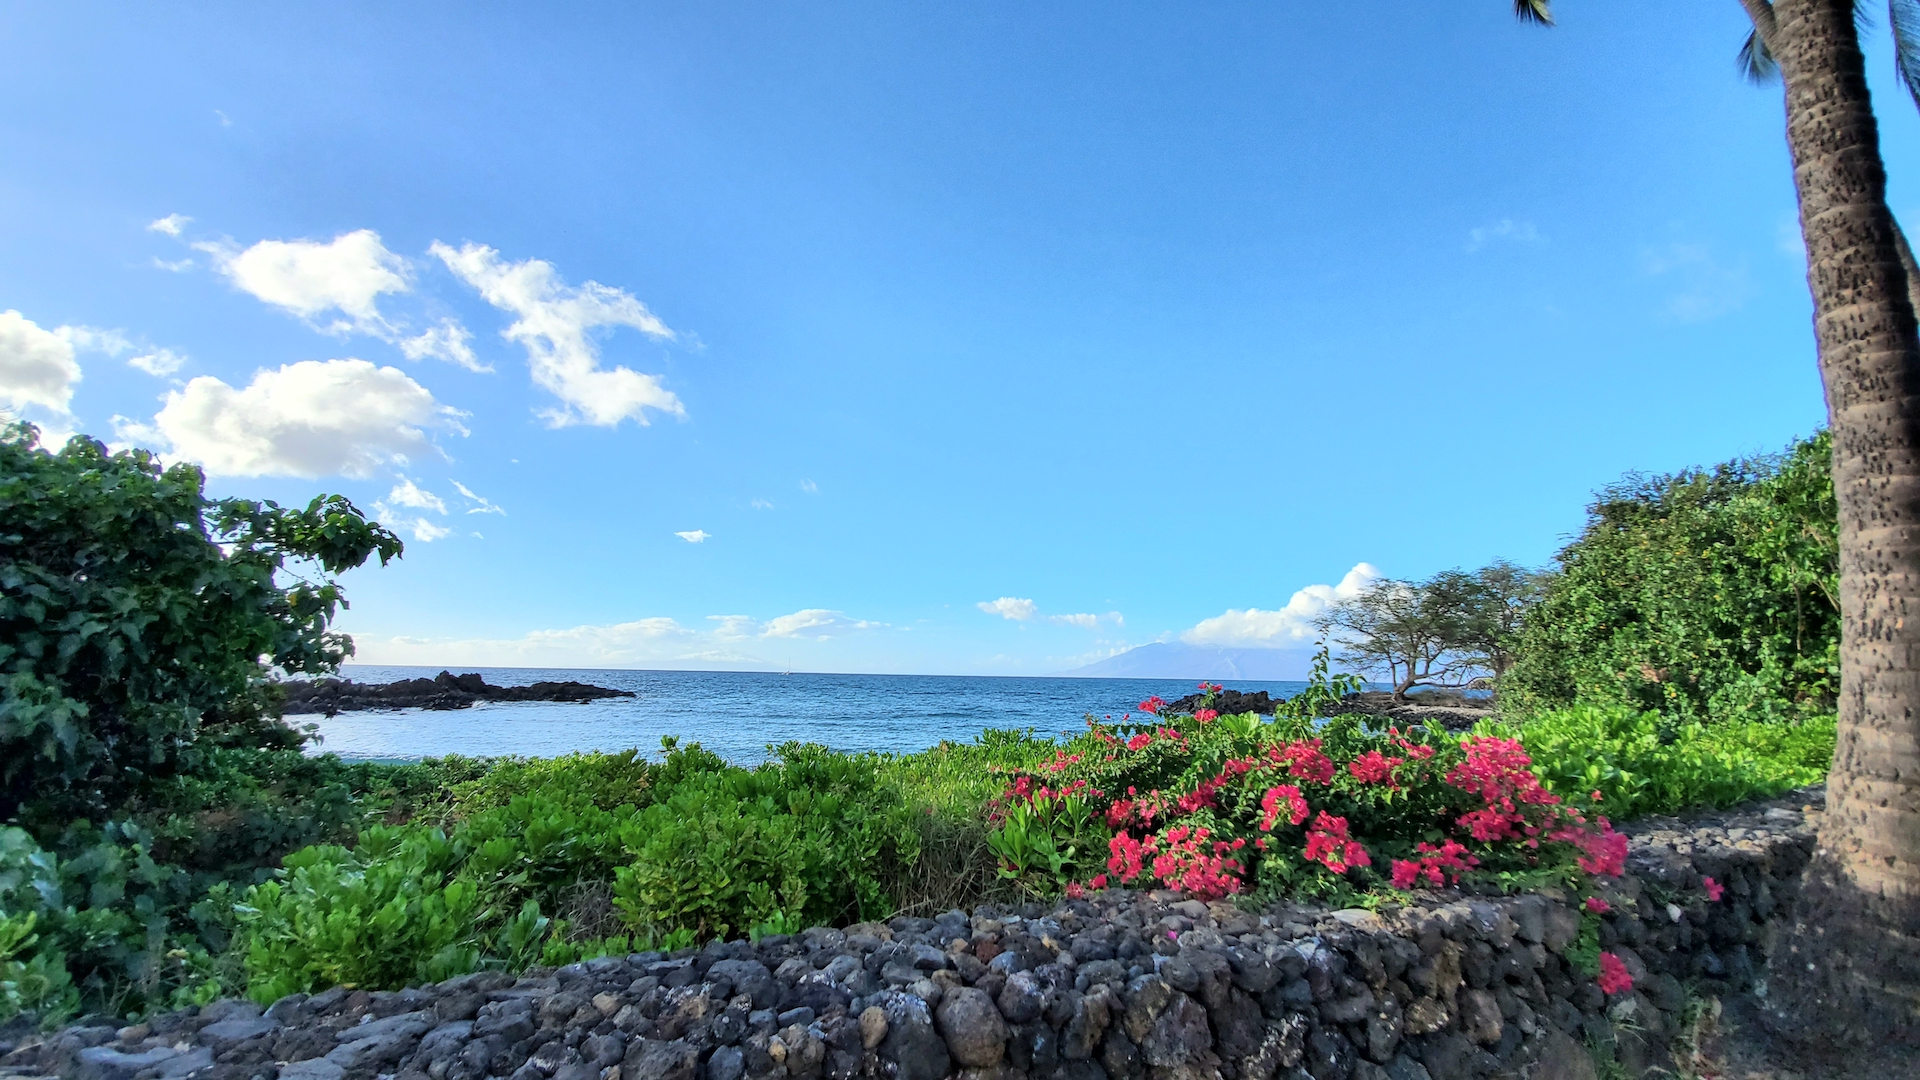 View towards Lana'i from the View from the Keawala'i Congregational Church.